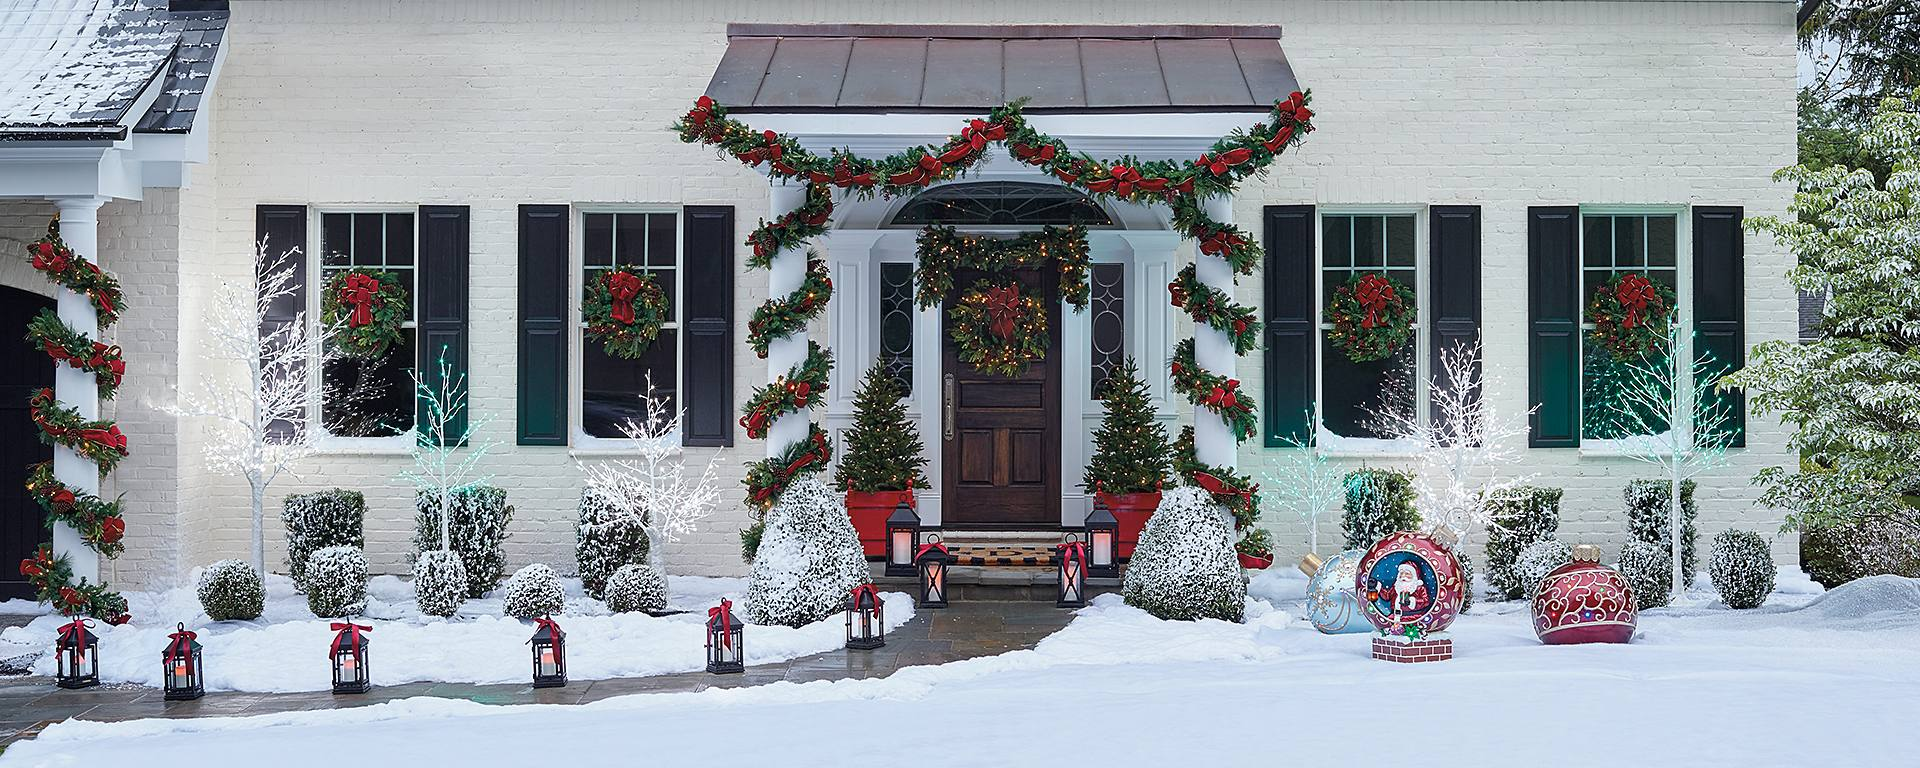 theres nothing that brings more joy to homeowners and passersby alike than a dazzling outdoor christmas display whether you go nuts with the lights - Joy Outdoor Christmas Decoration